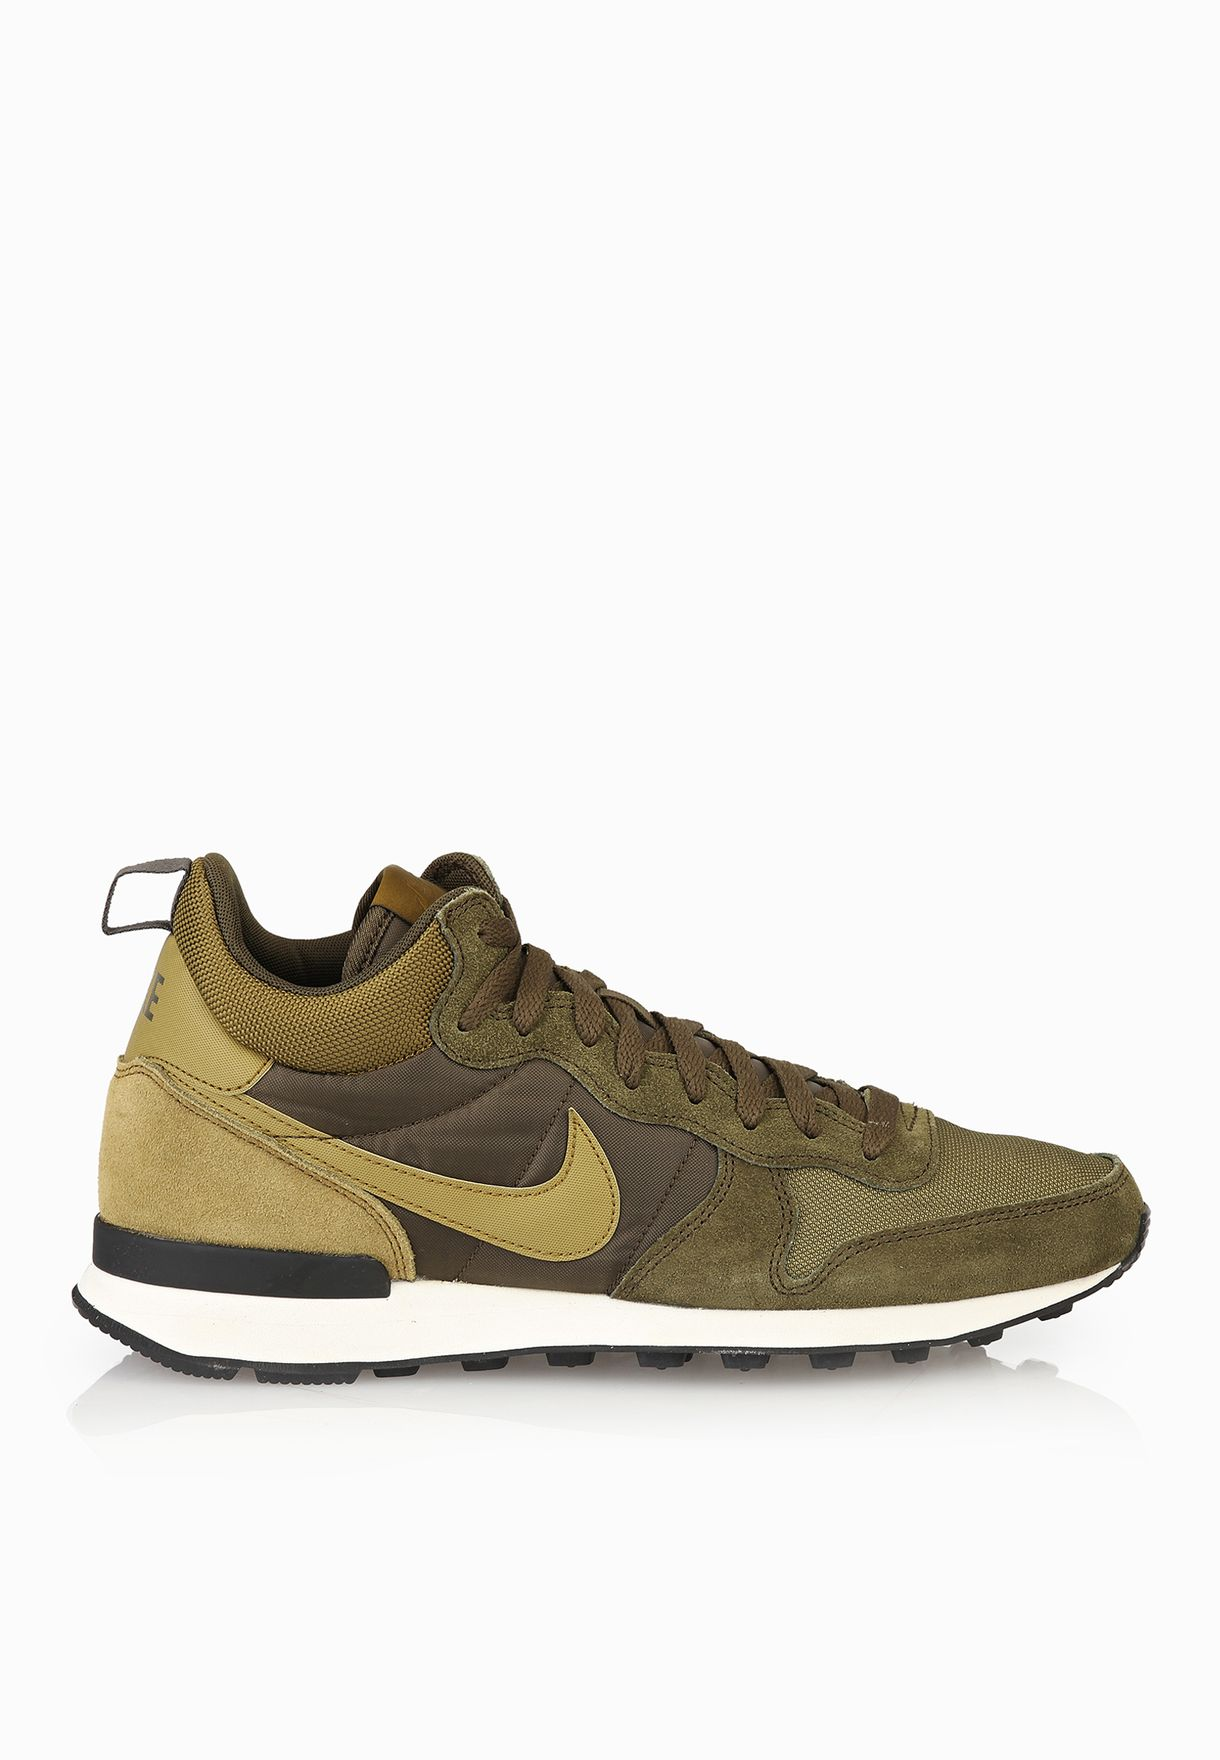 low priced 2887c 4ec19 clearance lyst nike internationalist mid sneaker in green ff014 301f5  cheapest  internationalist mid a0412 a1ae6